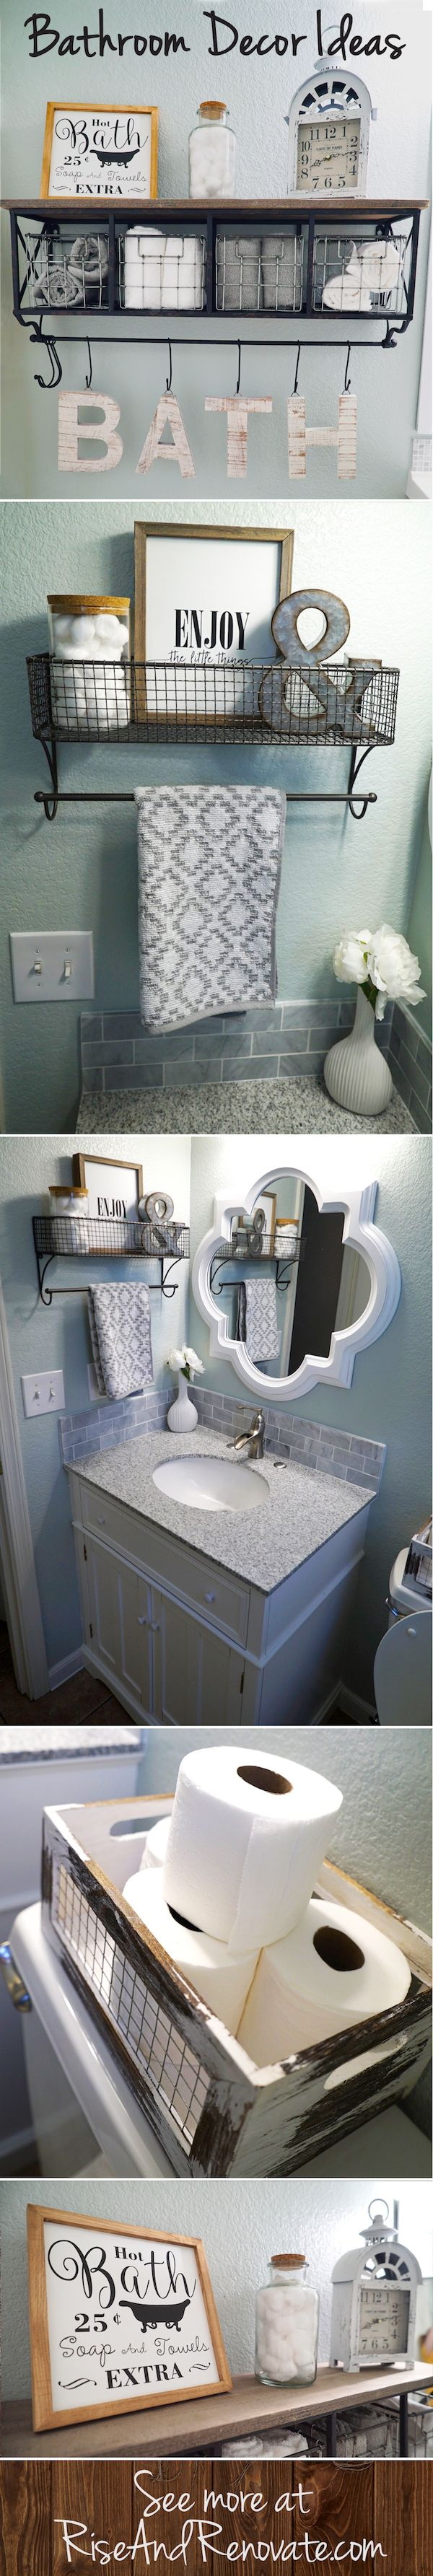 Best 25 Diy bathroom decor ideas only on Pinterest